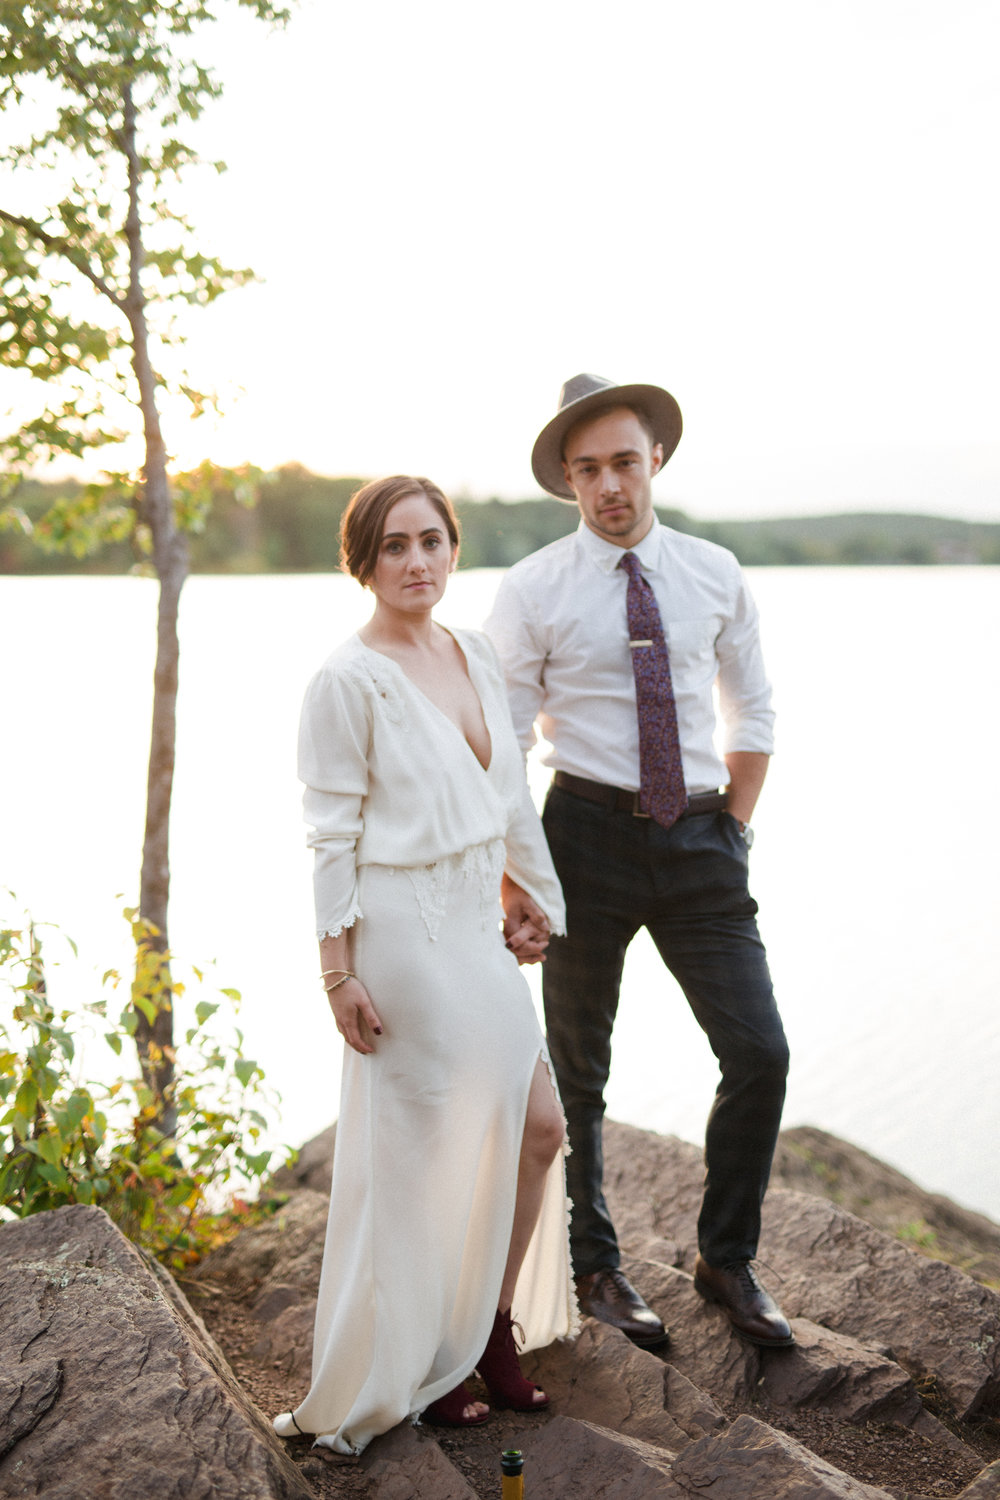 Massachusetts Woods Elopement_meg haley photographs_056.jpg